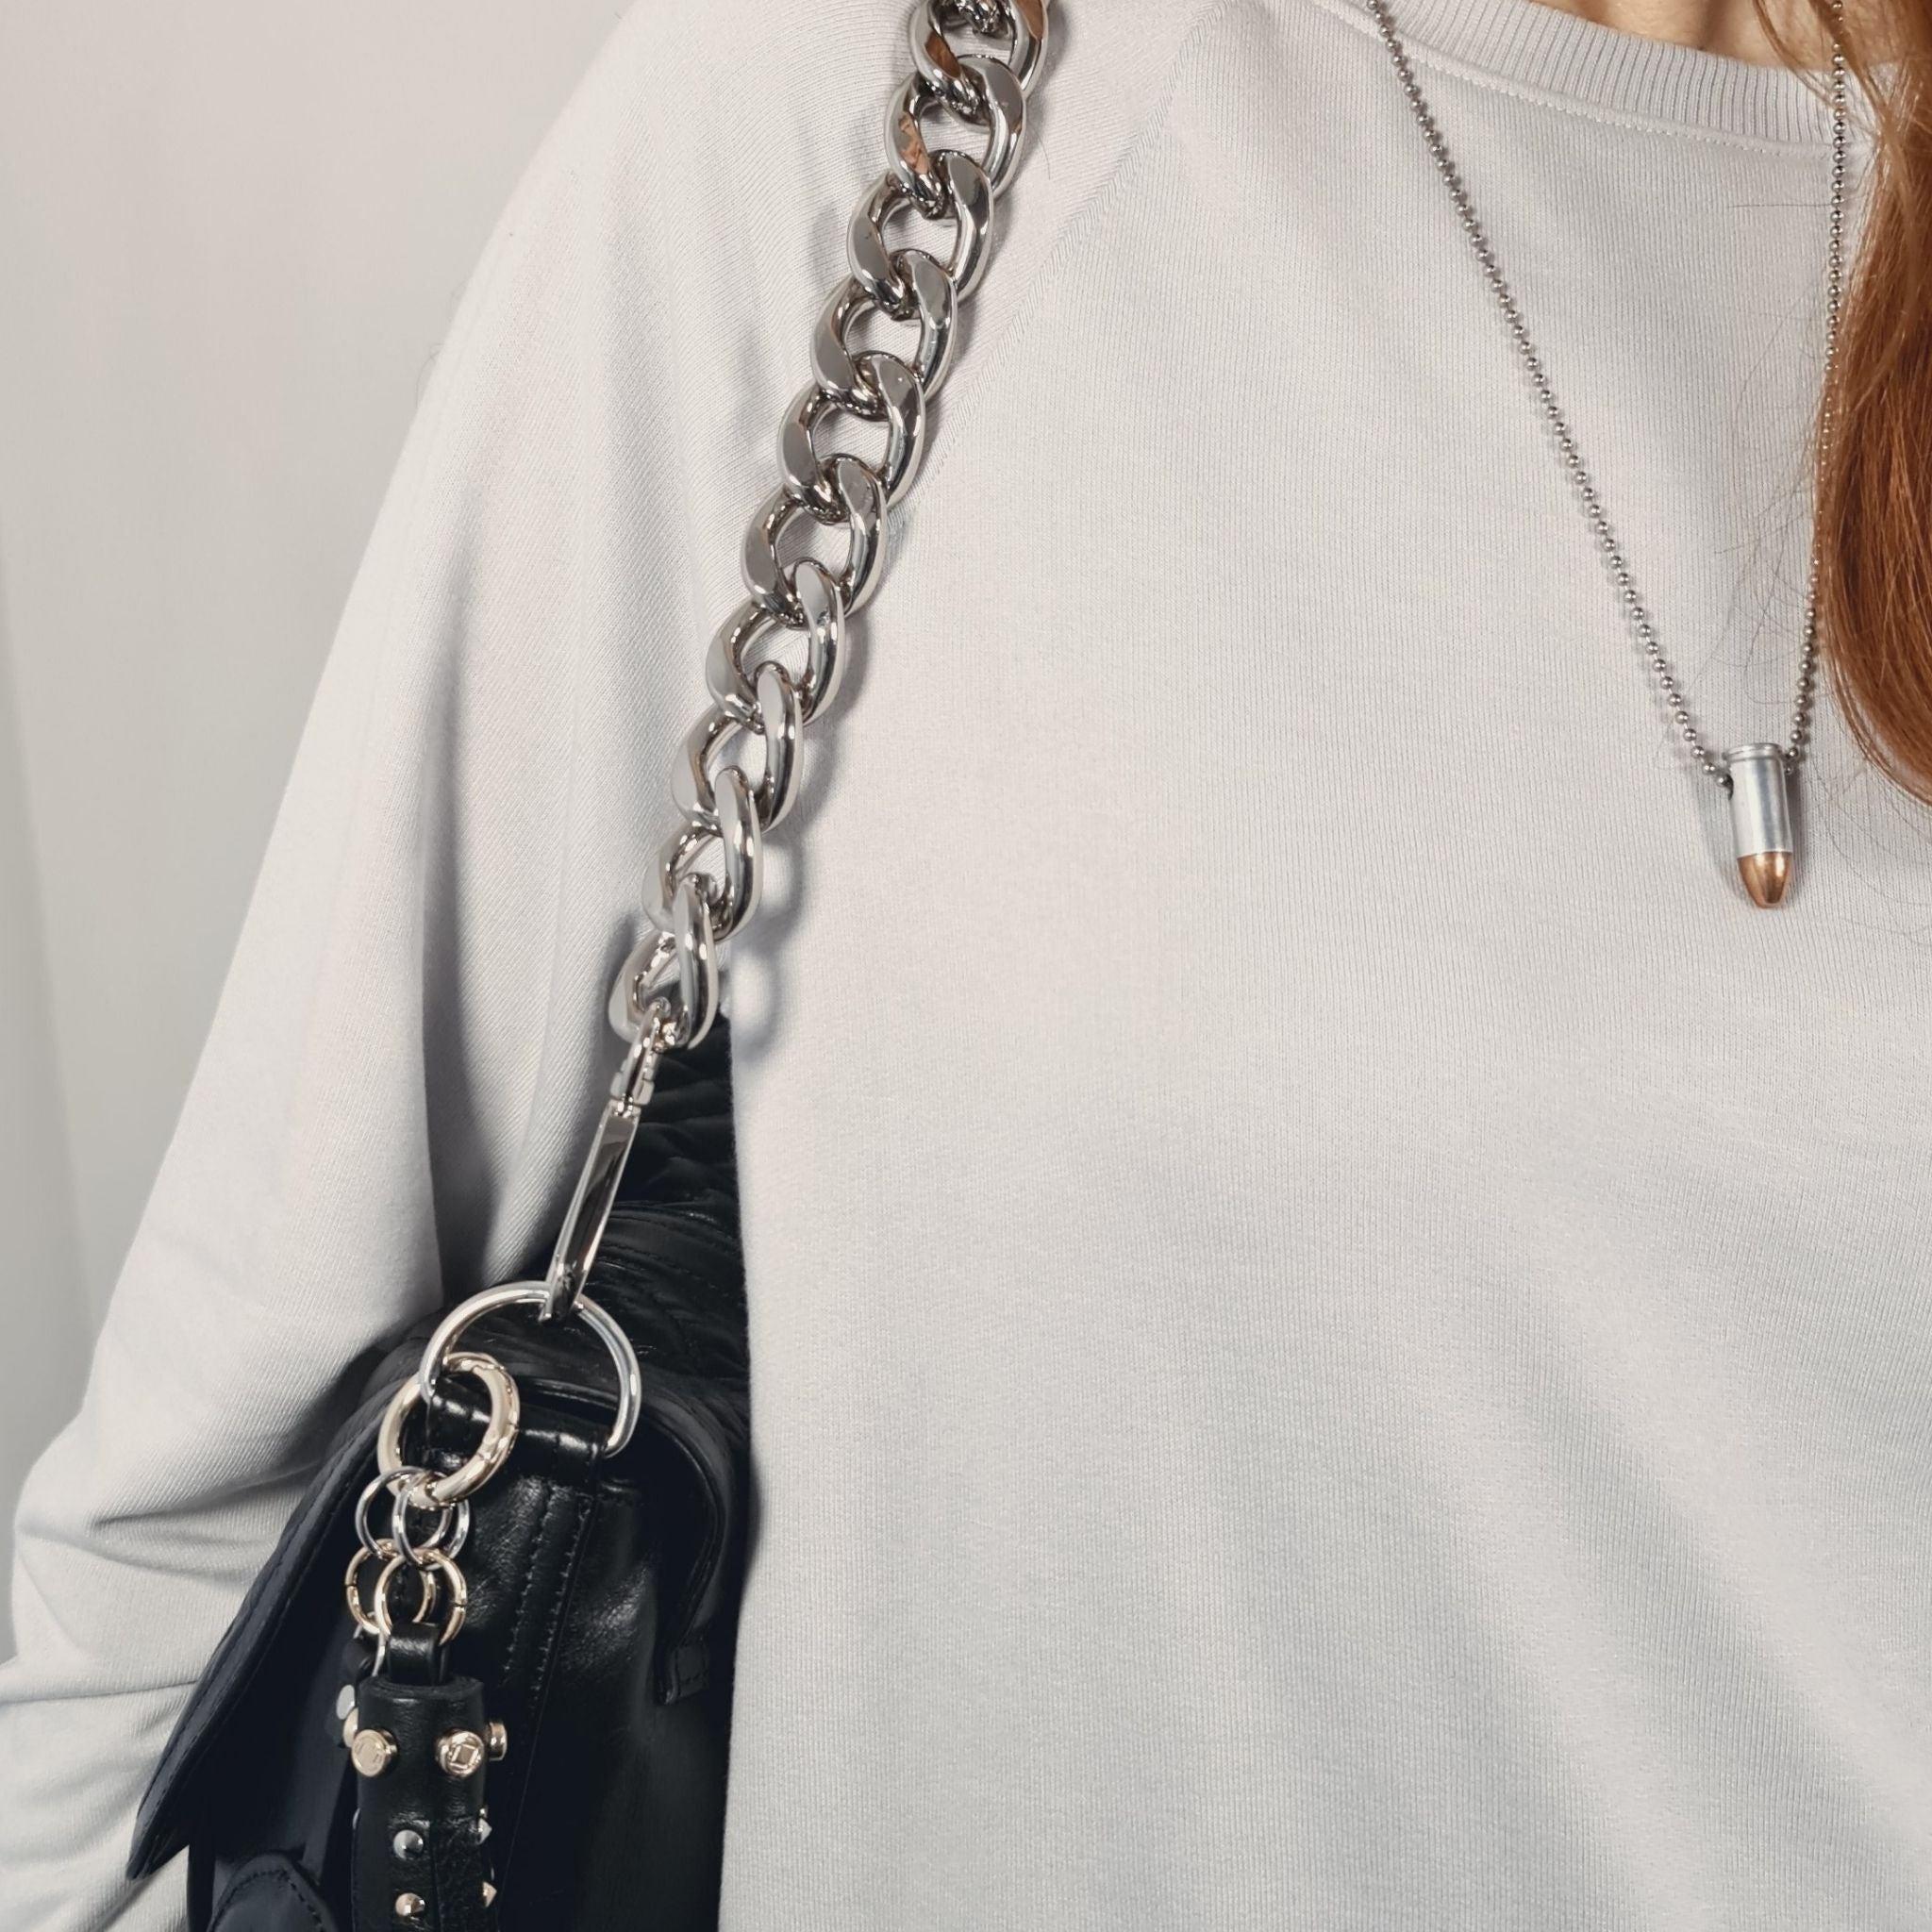 Luxury designer Jones black leather organiser crossbody changing bag with silver chain strap